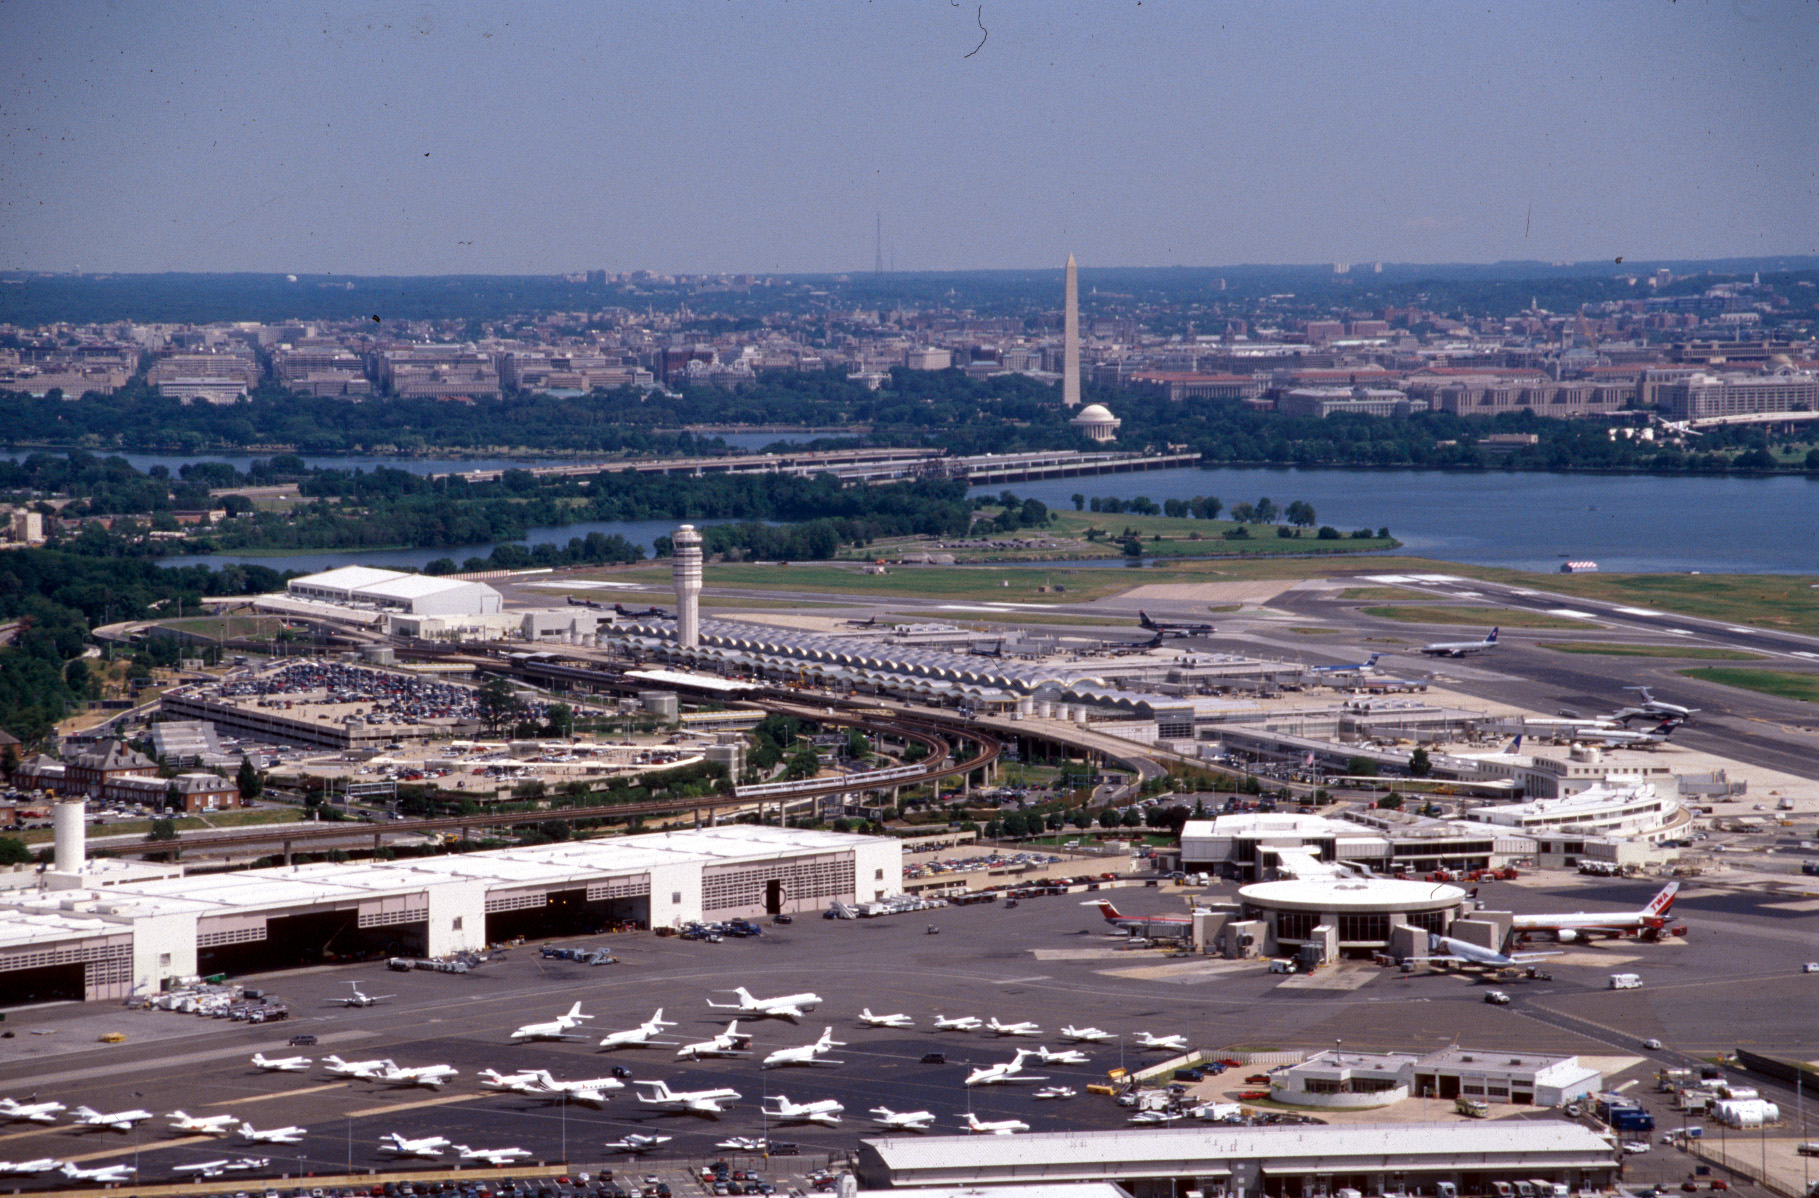 View of airport photo